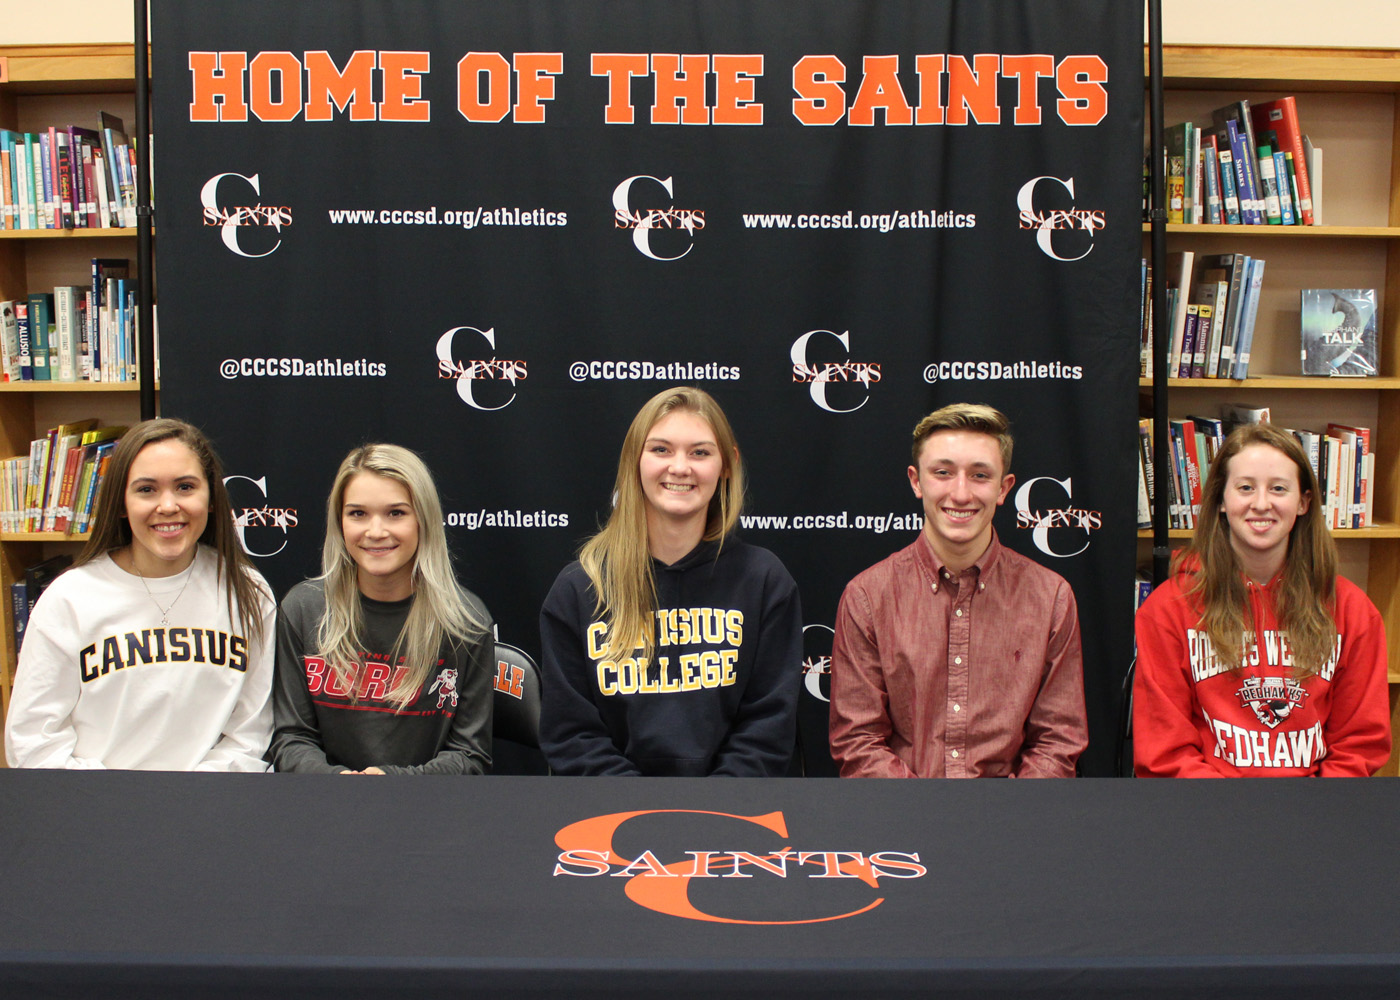 Churchville-Chili seniors headed to bright careers in college sports (l-r):  Ilia Bagley, Rian McMullen, Skylar Burlee, Marko Mitrevski and Laura Freeman.